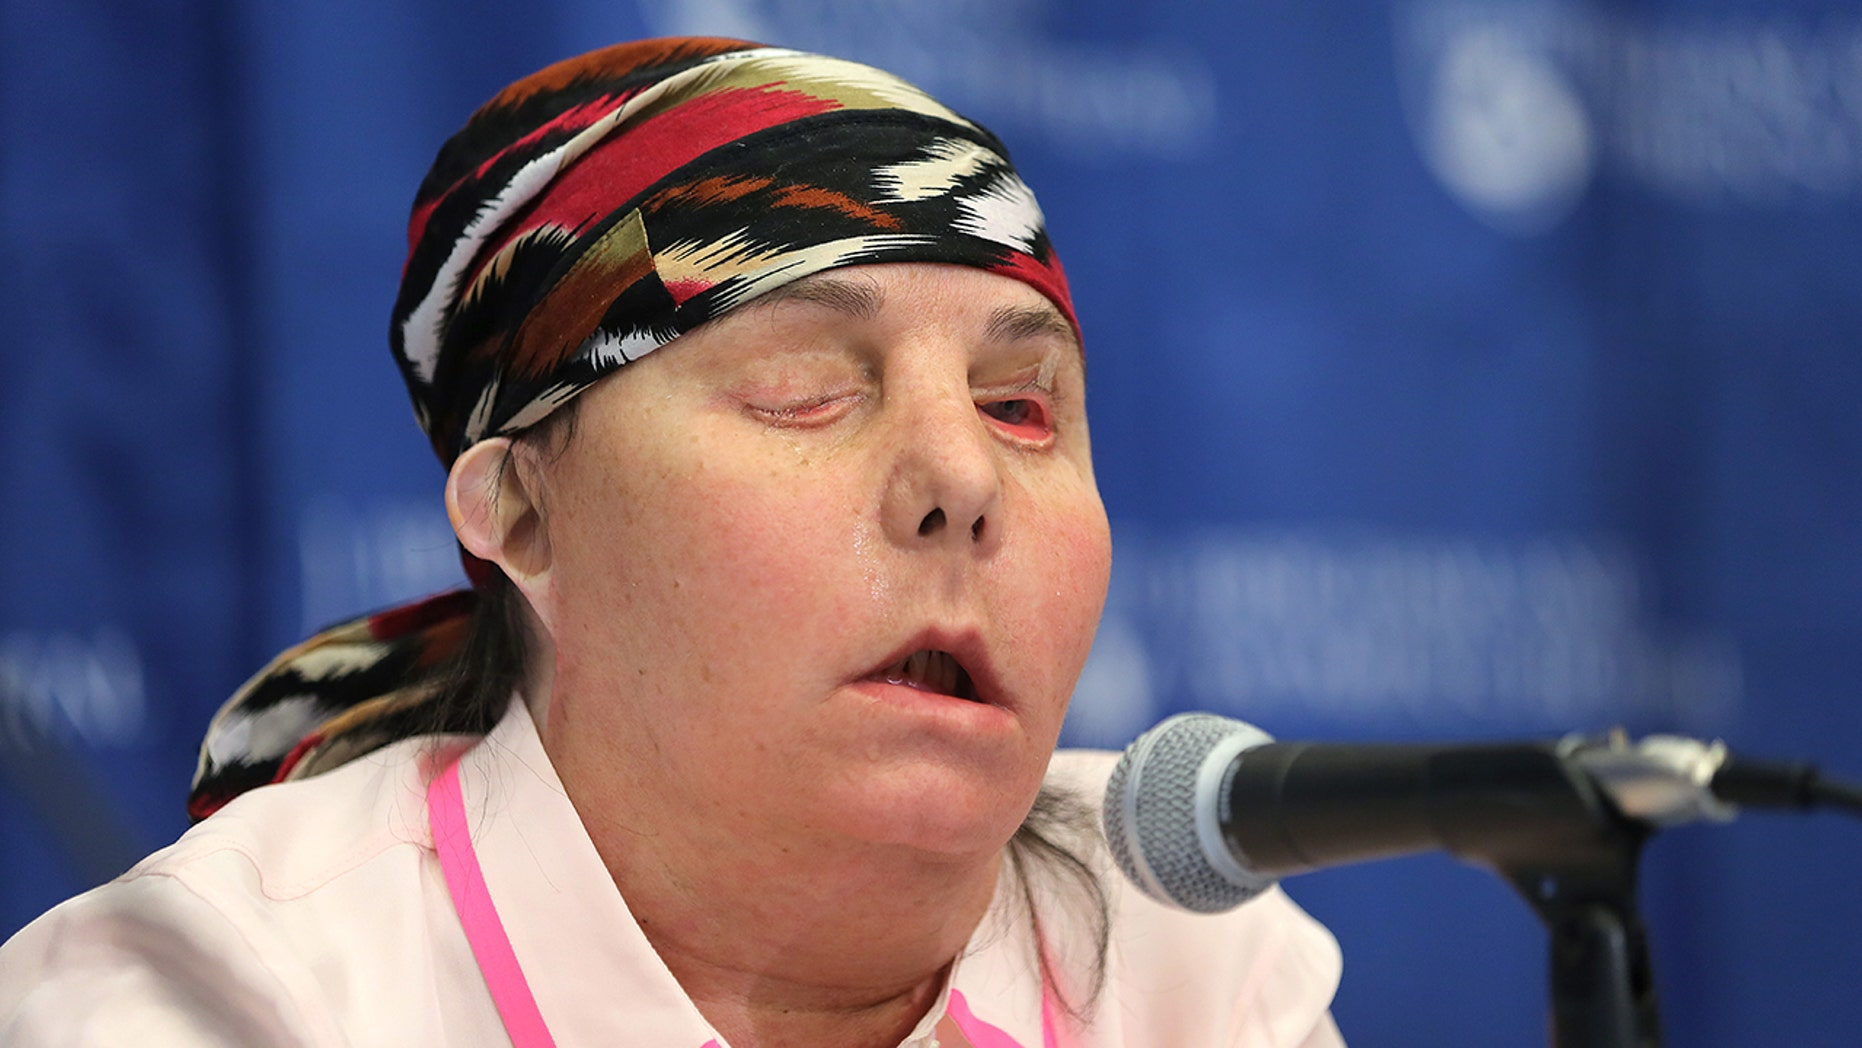 Carmen Blandin Tarleton speaks at a May 2013 press conference at Brigham and Women's Hospital following her face transplant surgery.